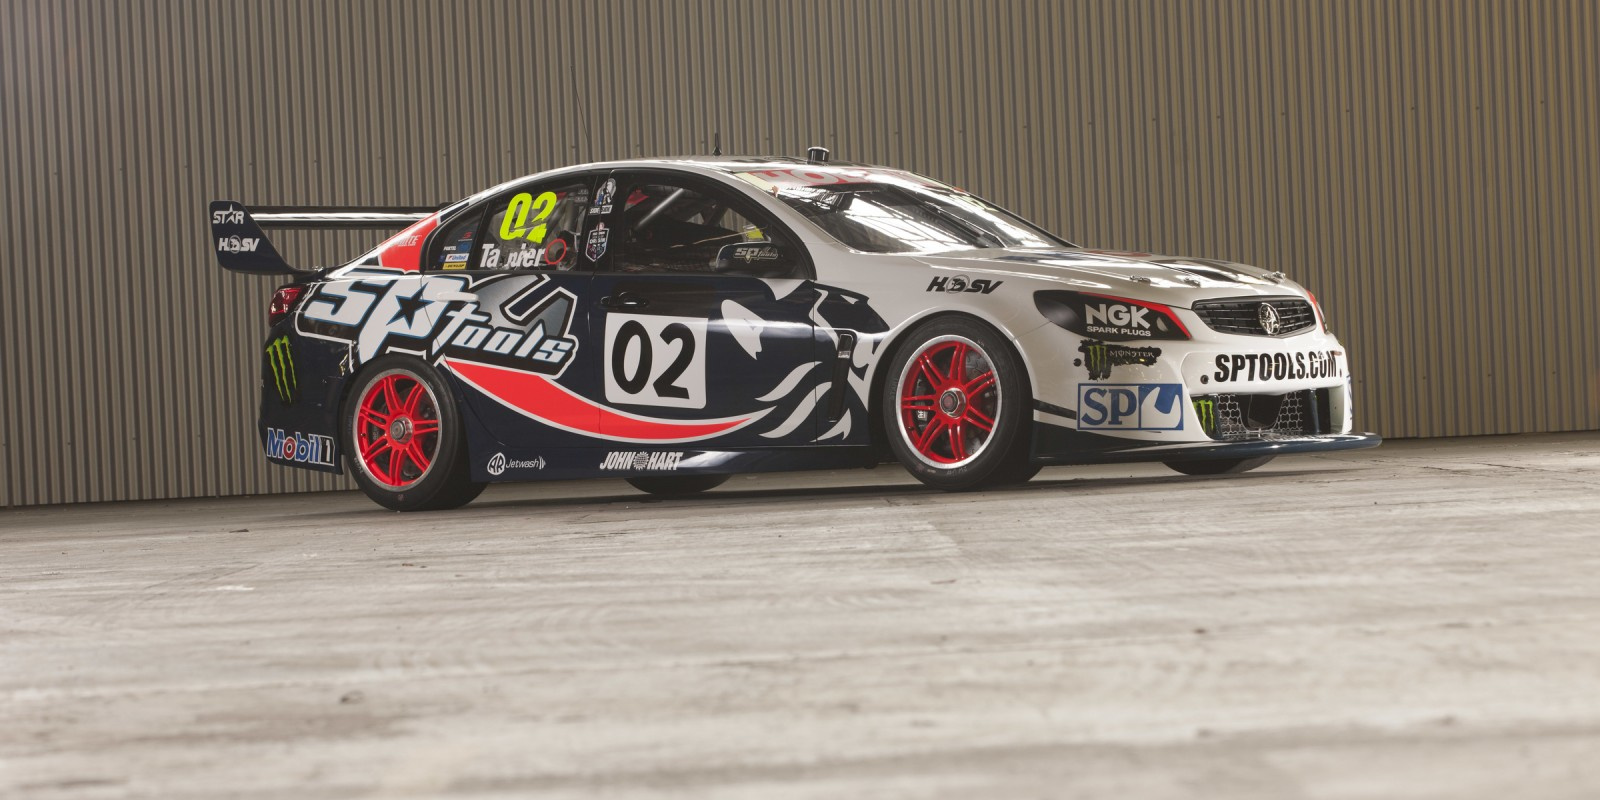 Holden Race Team Heritage Livery